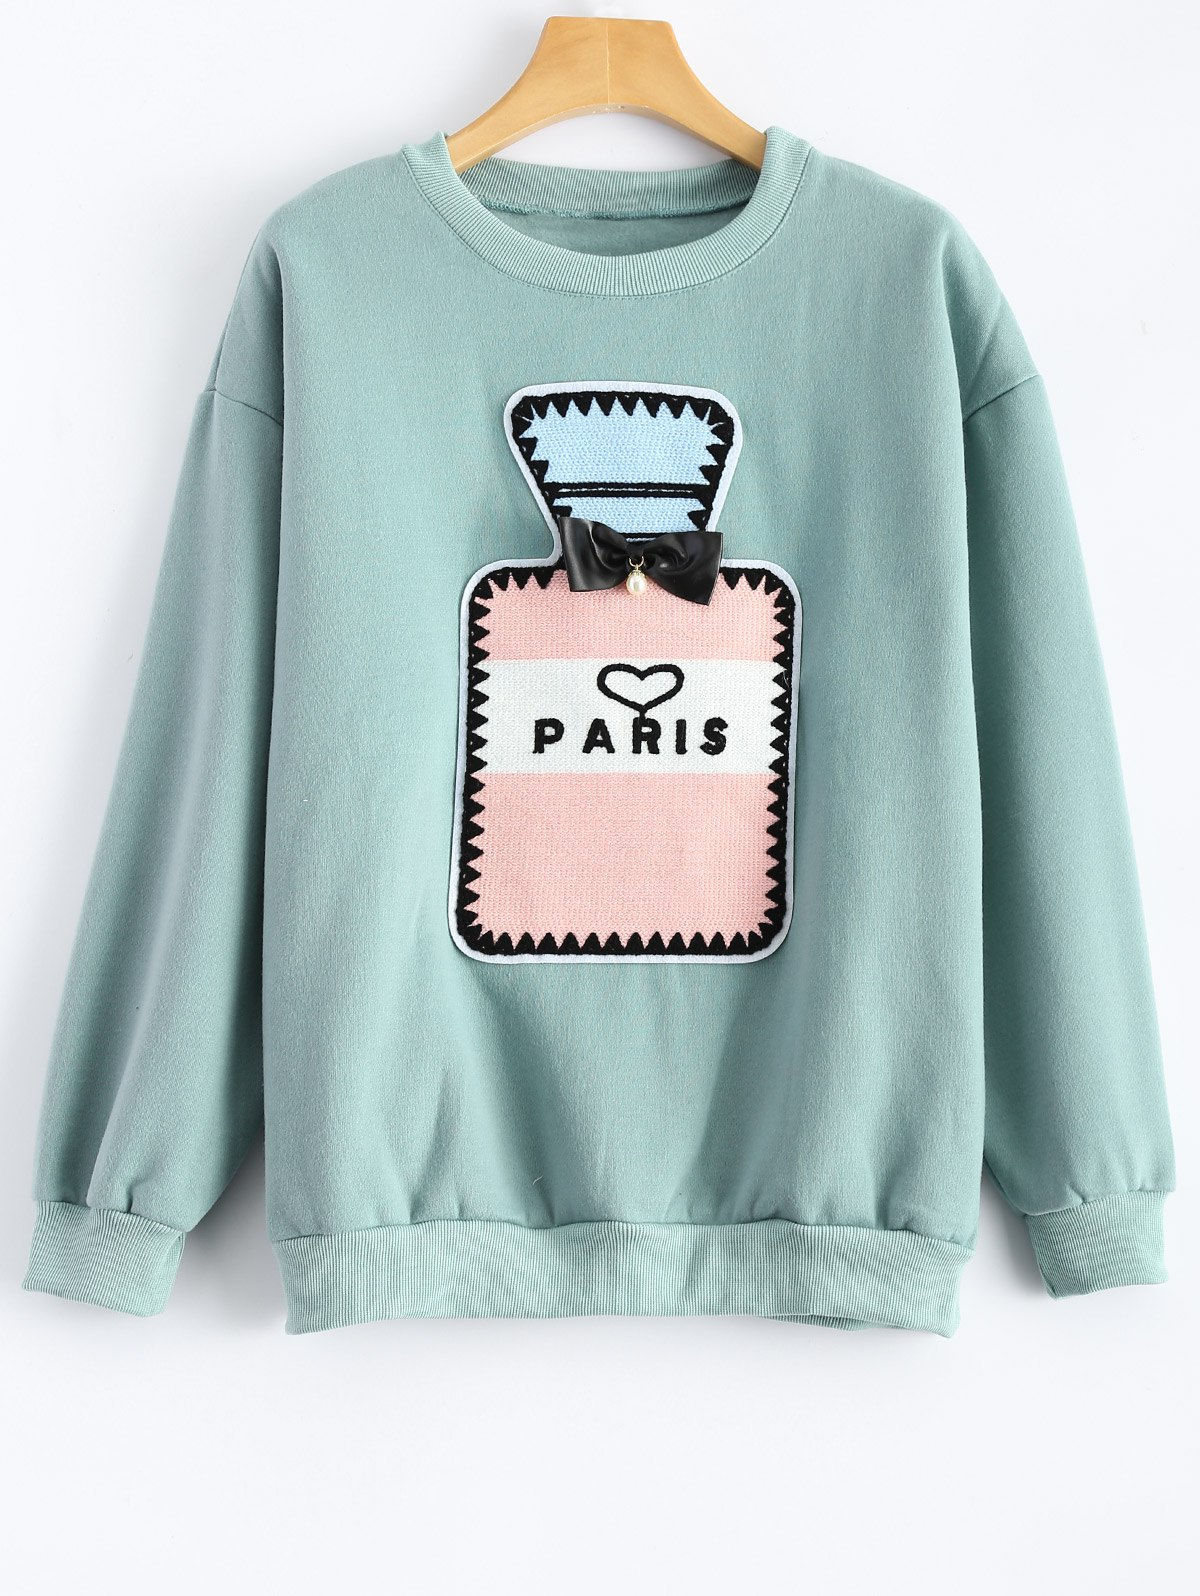 Crew Neck Perfume Bottle Patch Sweatshirt